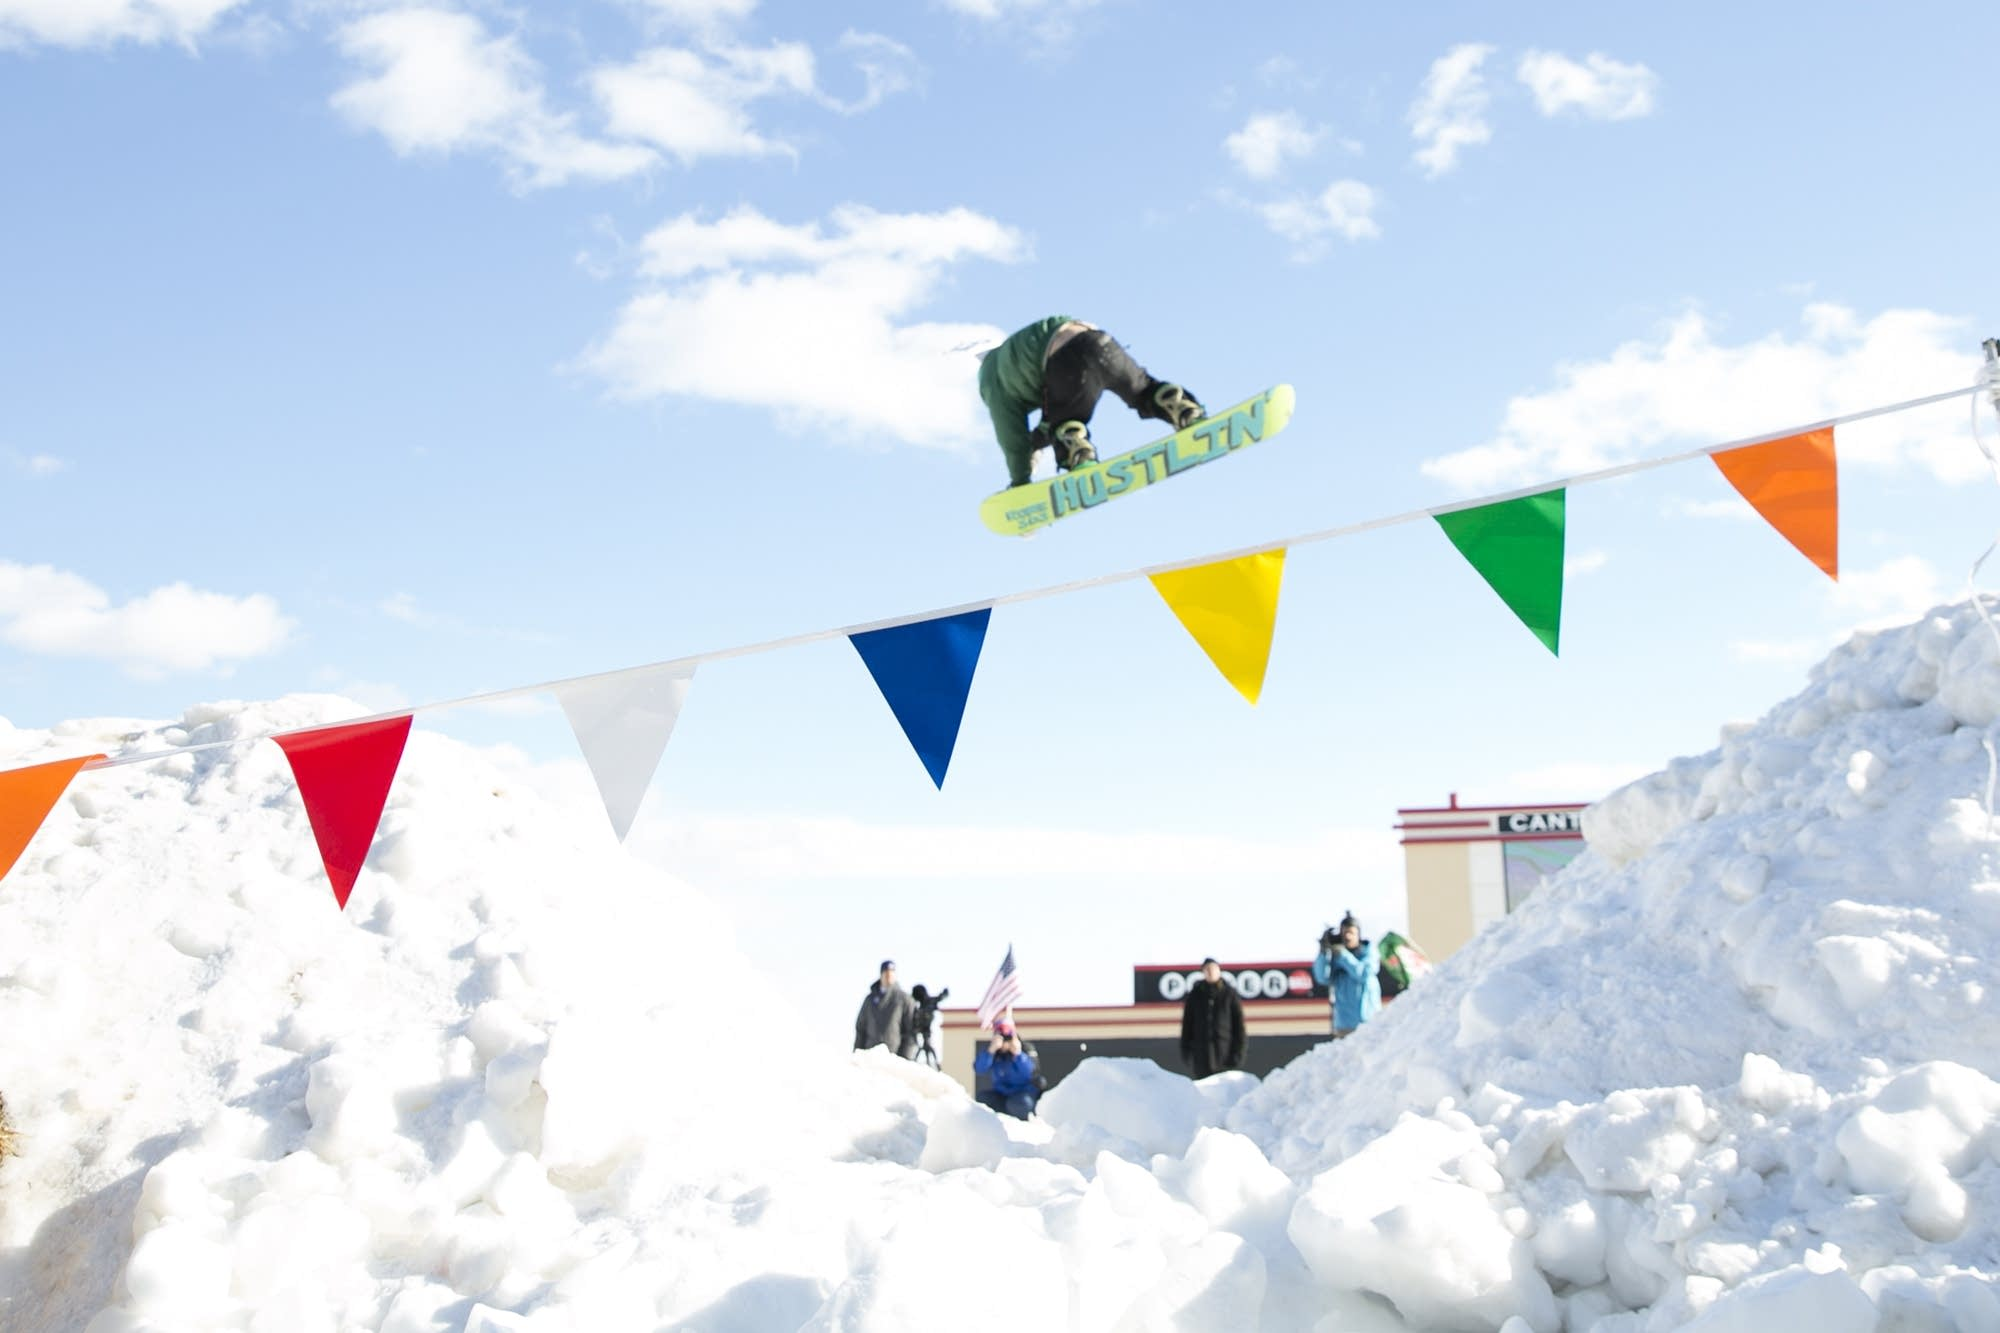 A snowboarder pulls off a trick during the freestyle part of the event.